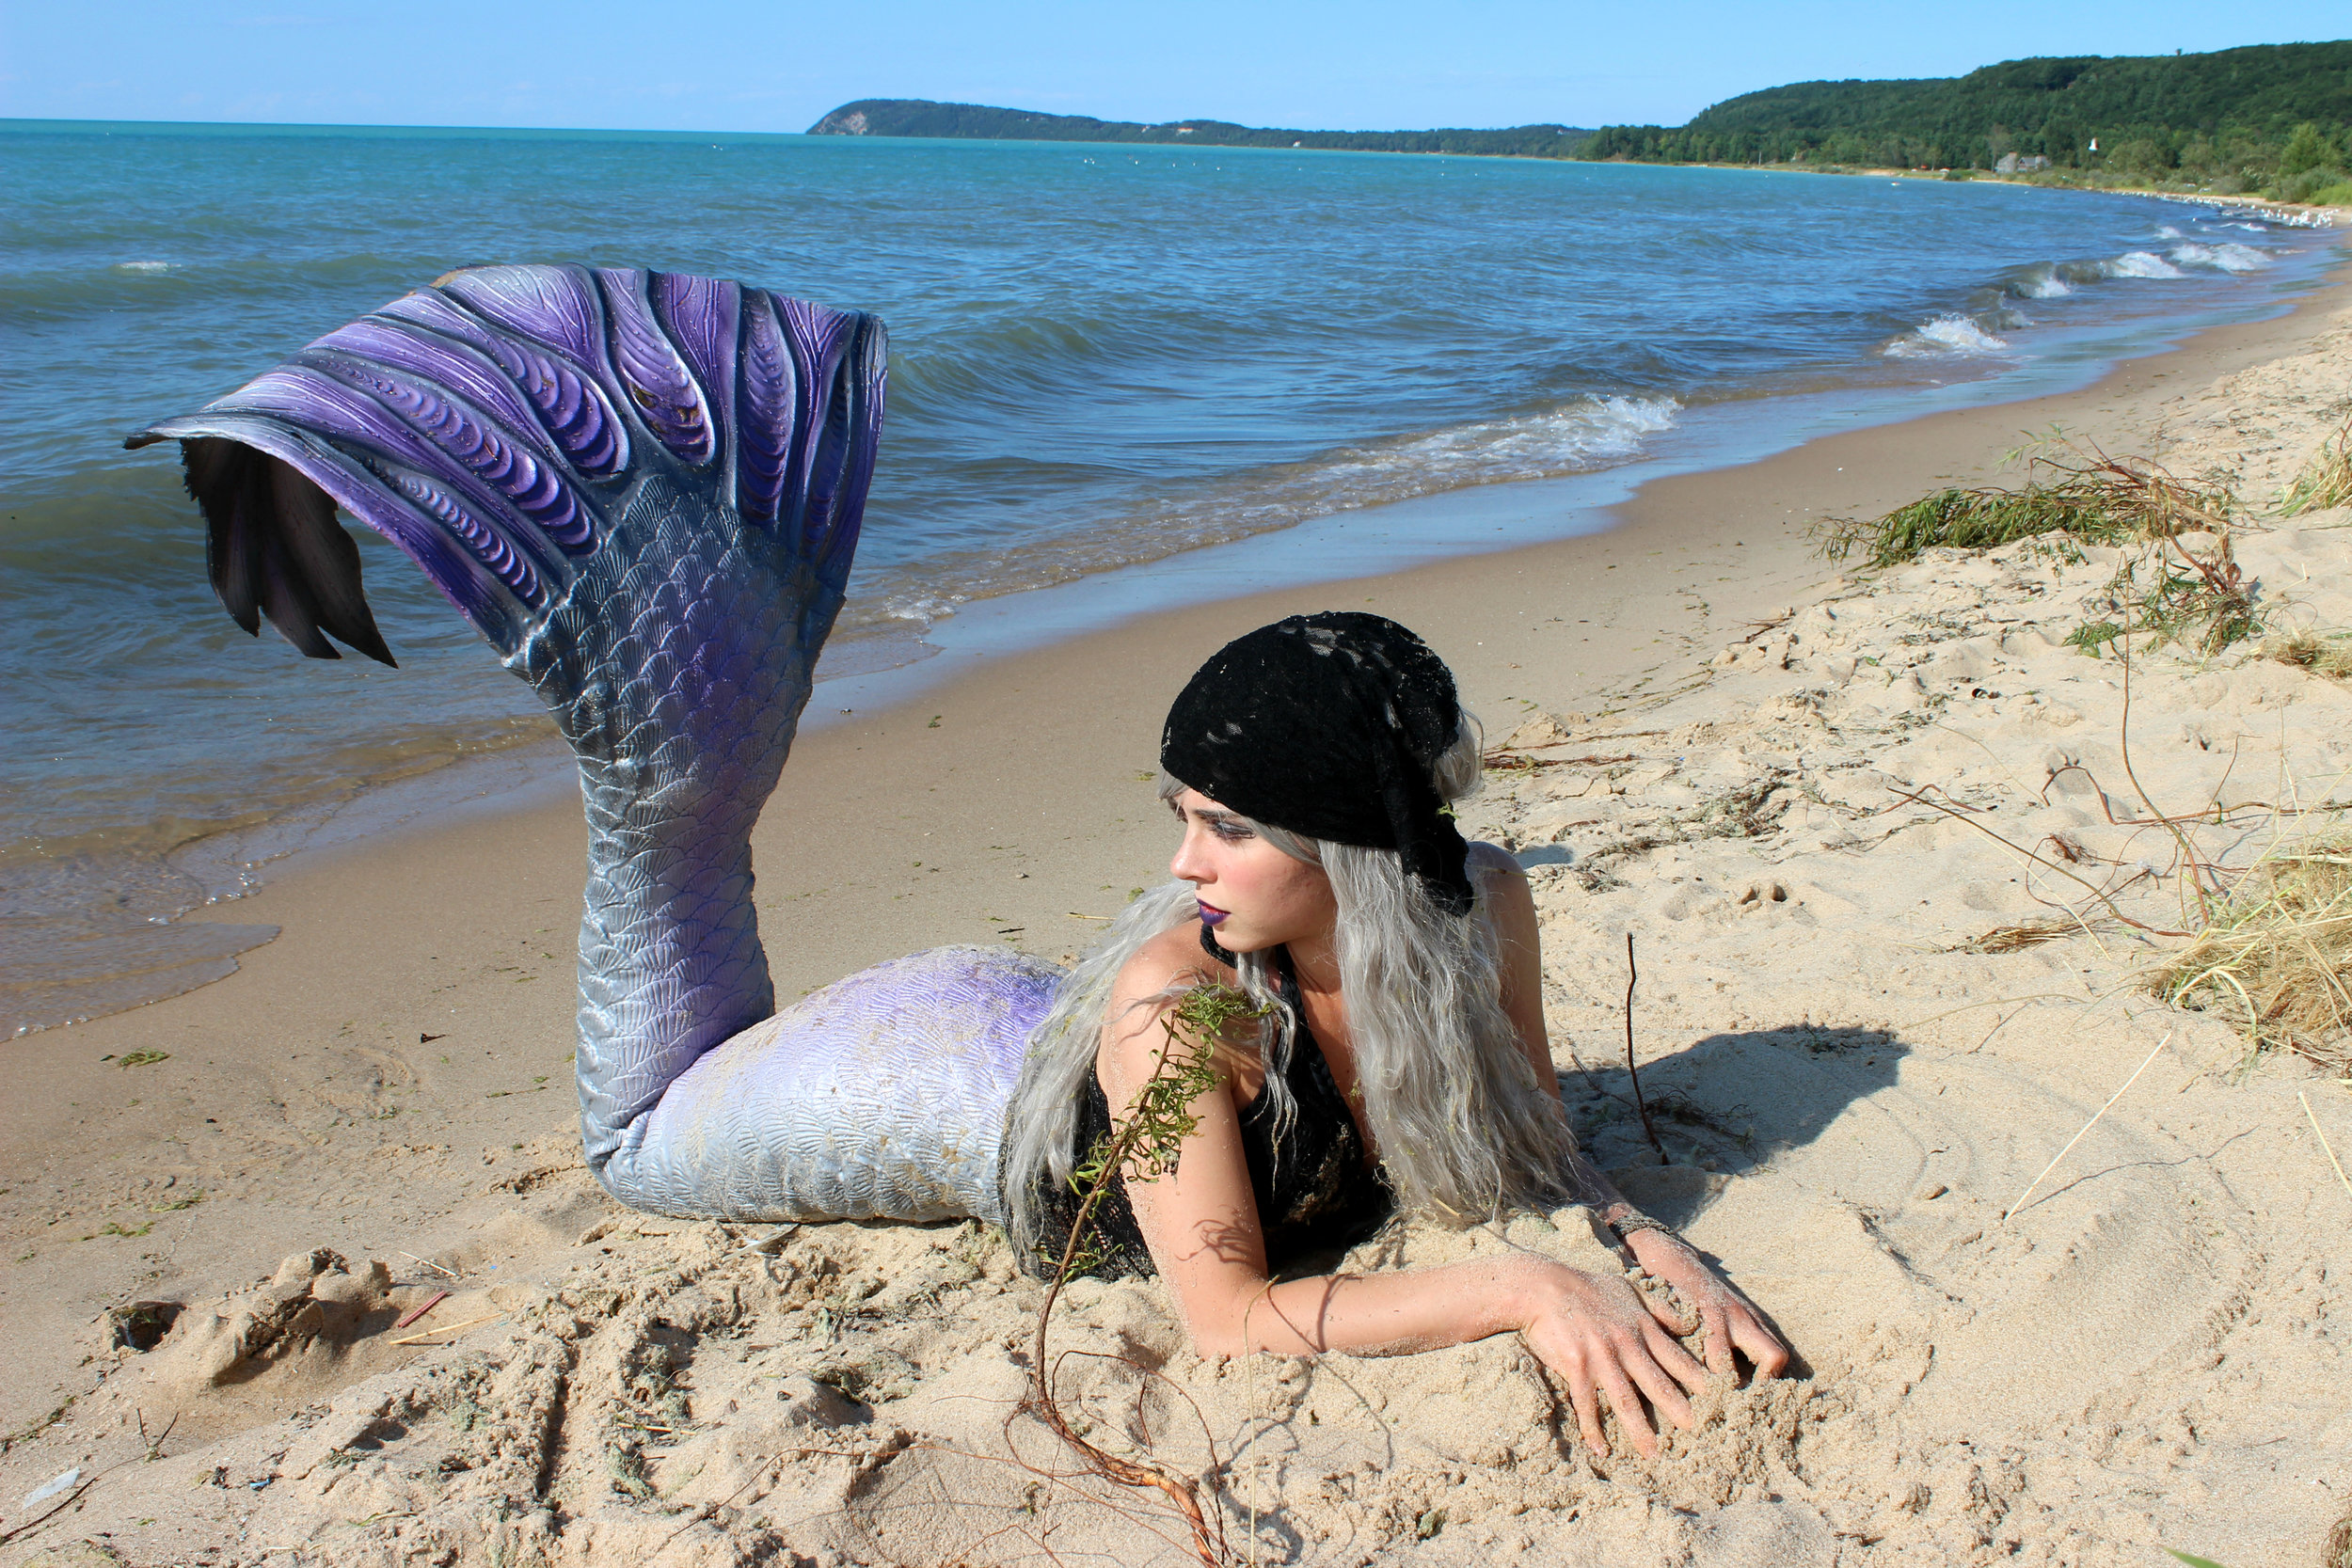 Mermaid-Phantom-pirate-life-for-me-beach-looking-back.jpg